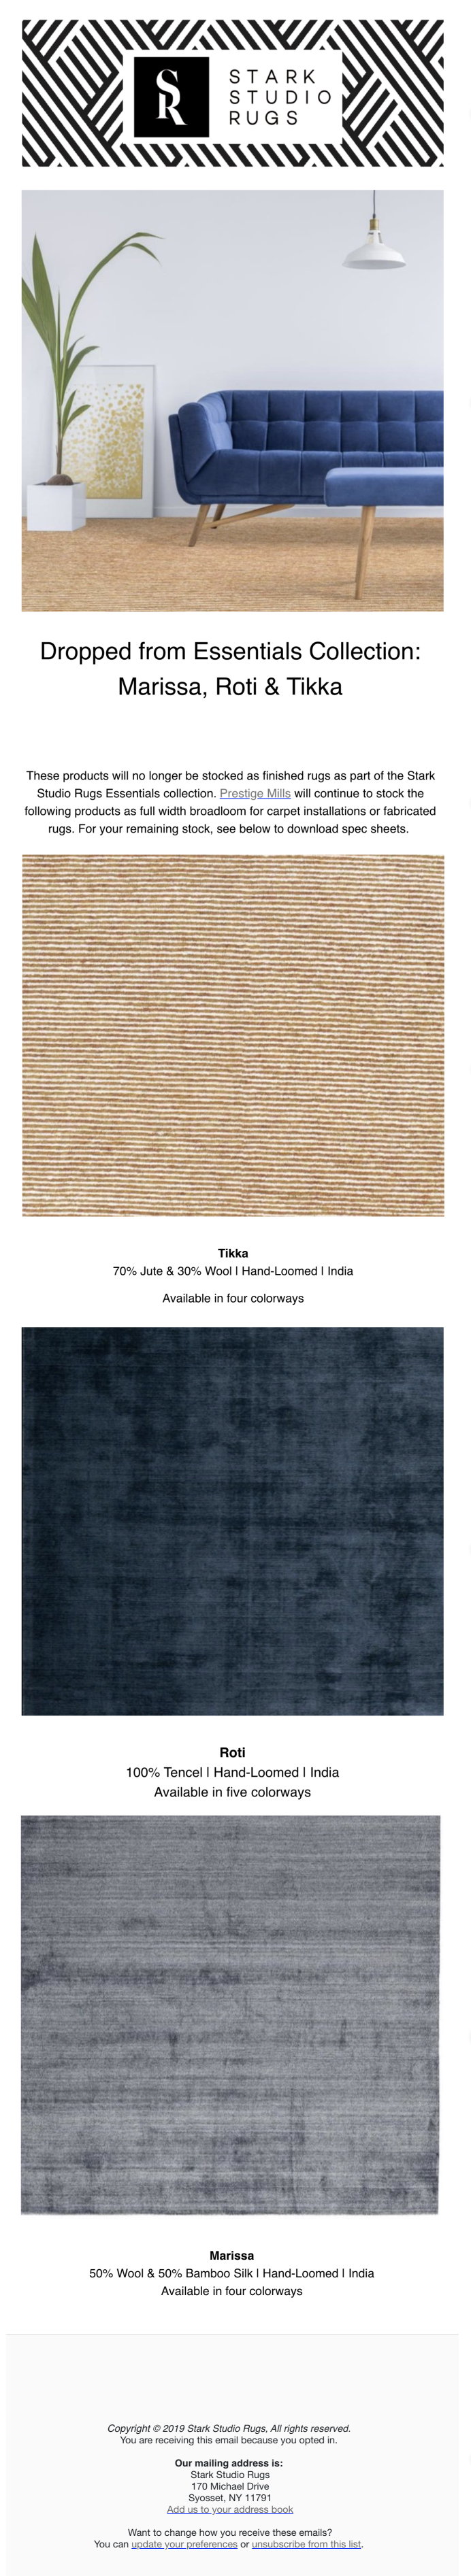 Stark Studio Rugs Stark Studio Rugs | Essentials Collection Update: Marissa, Roti & Tikka